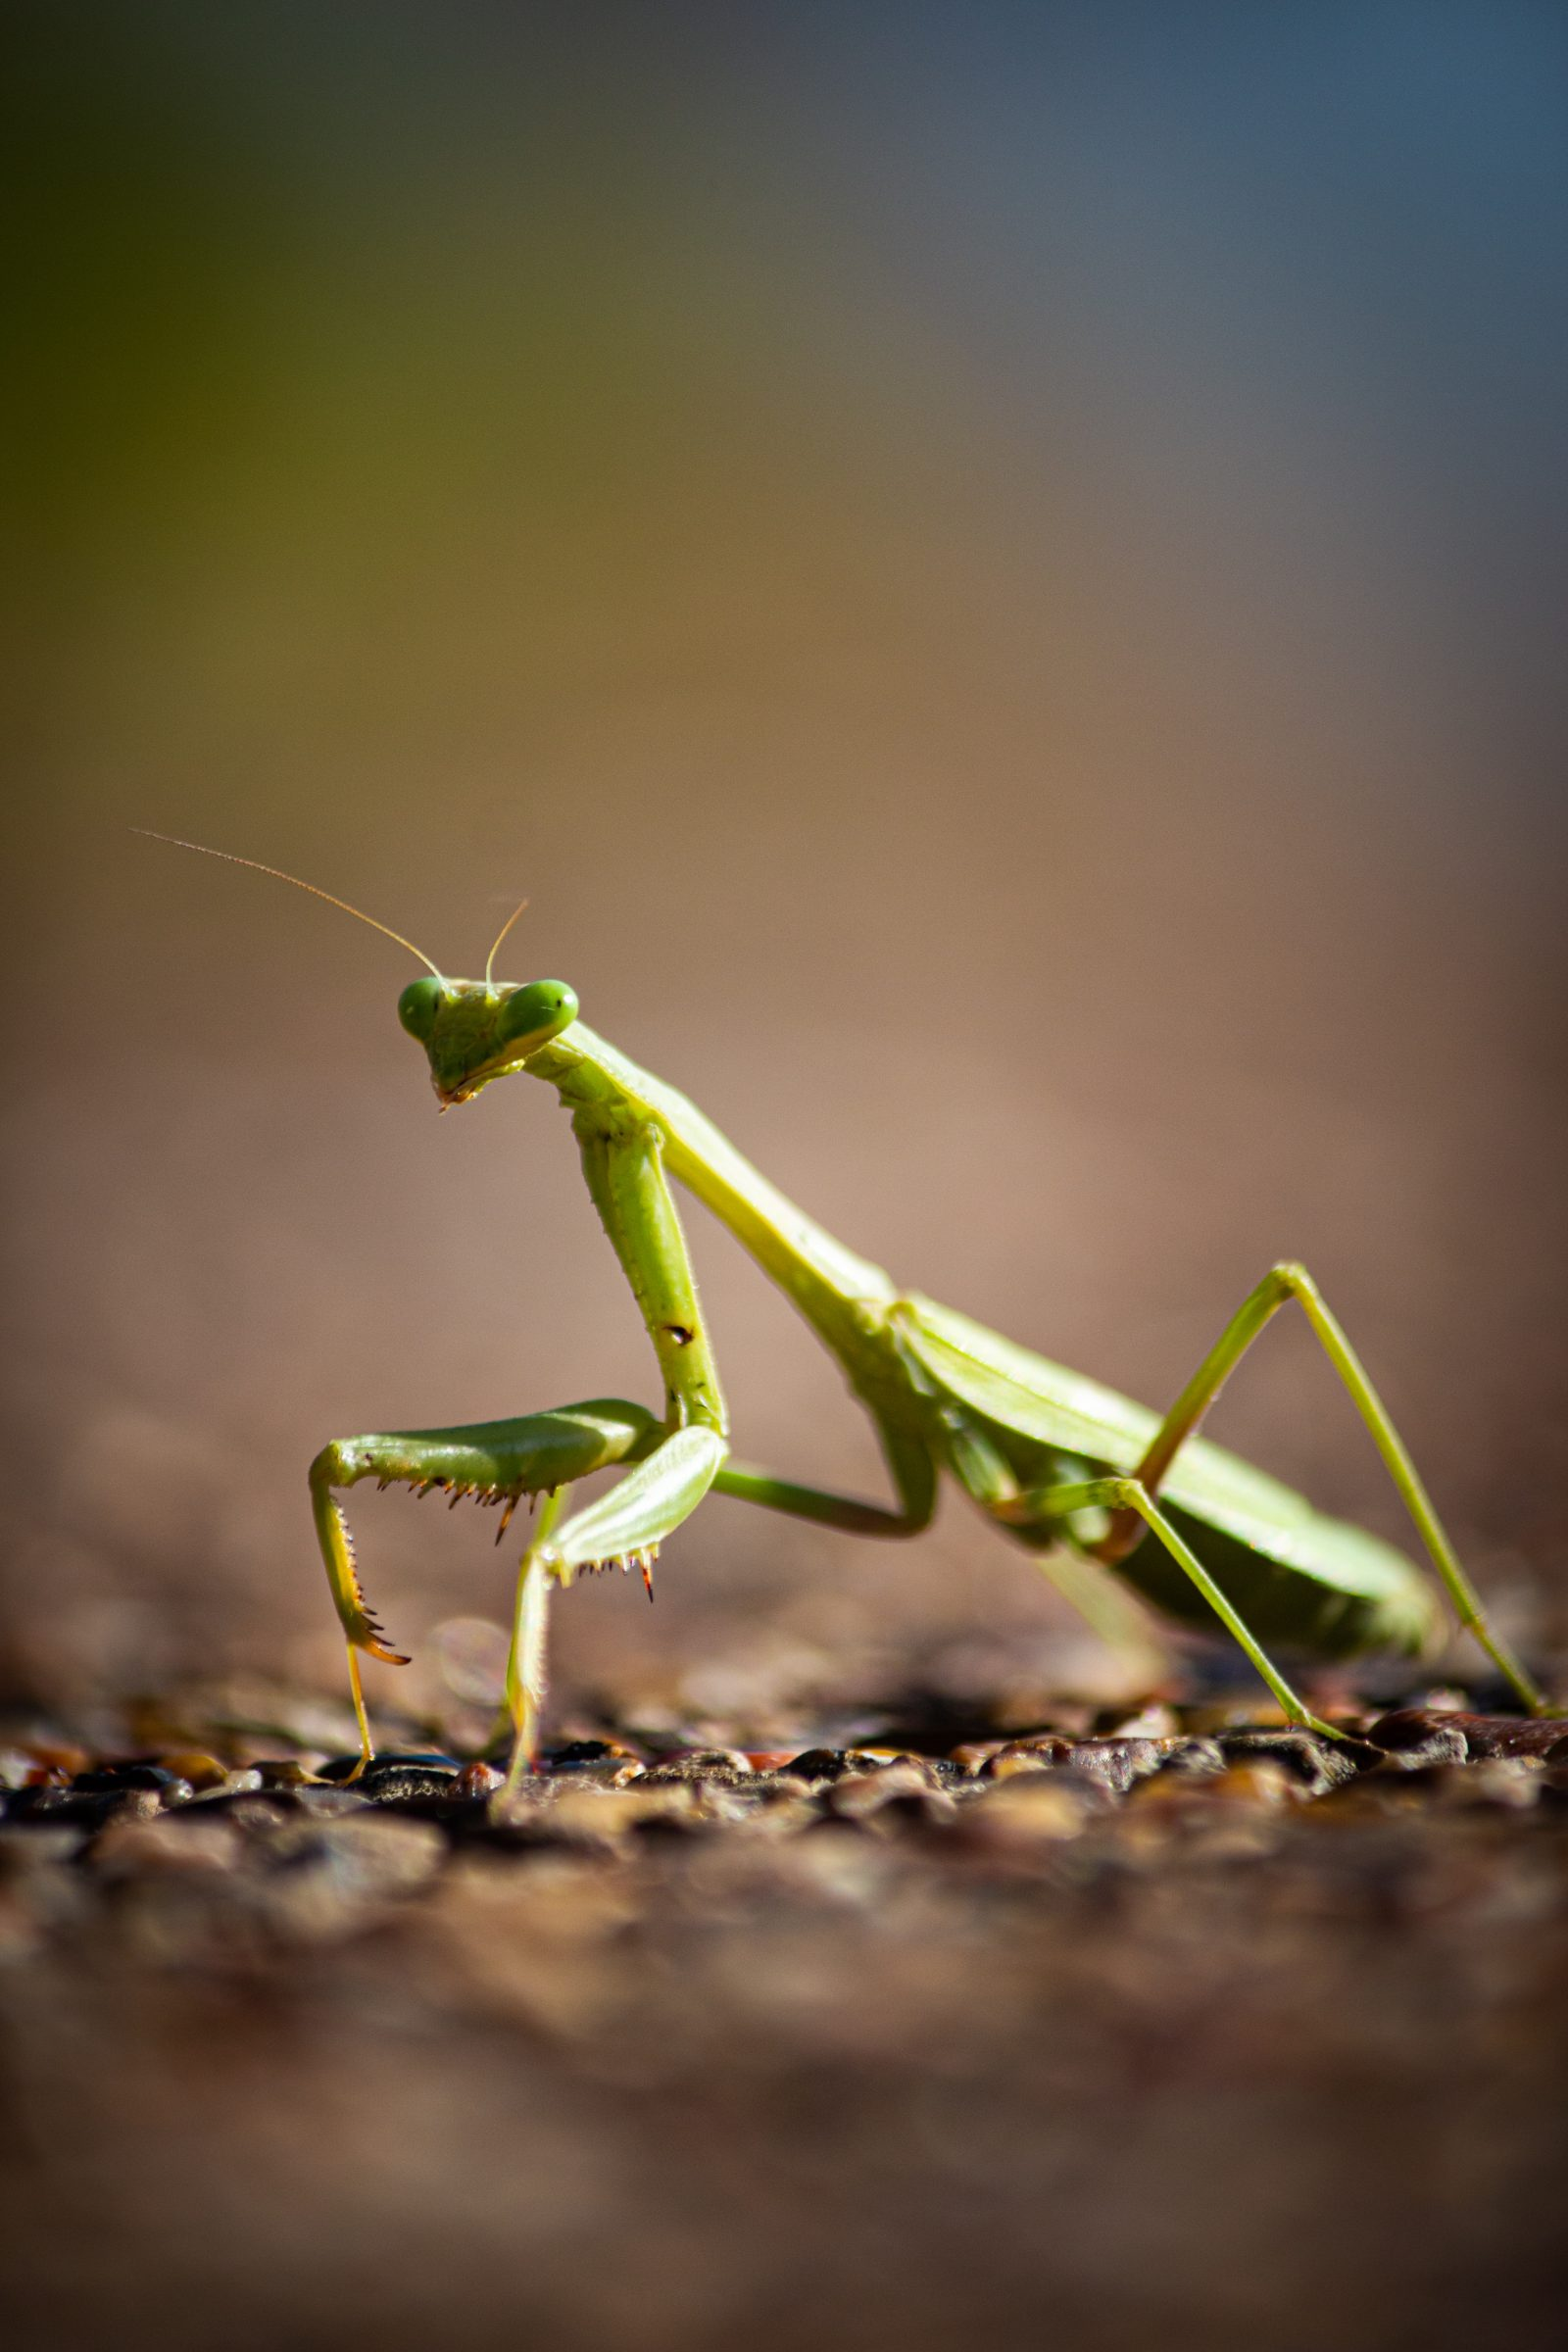 Praying Mantis Crossing the Road